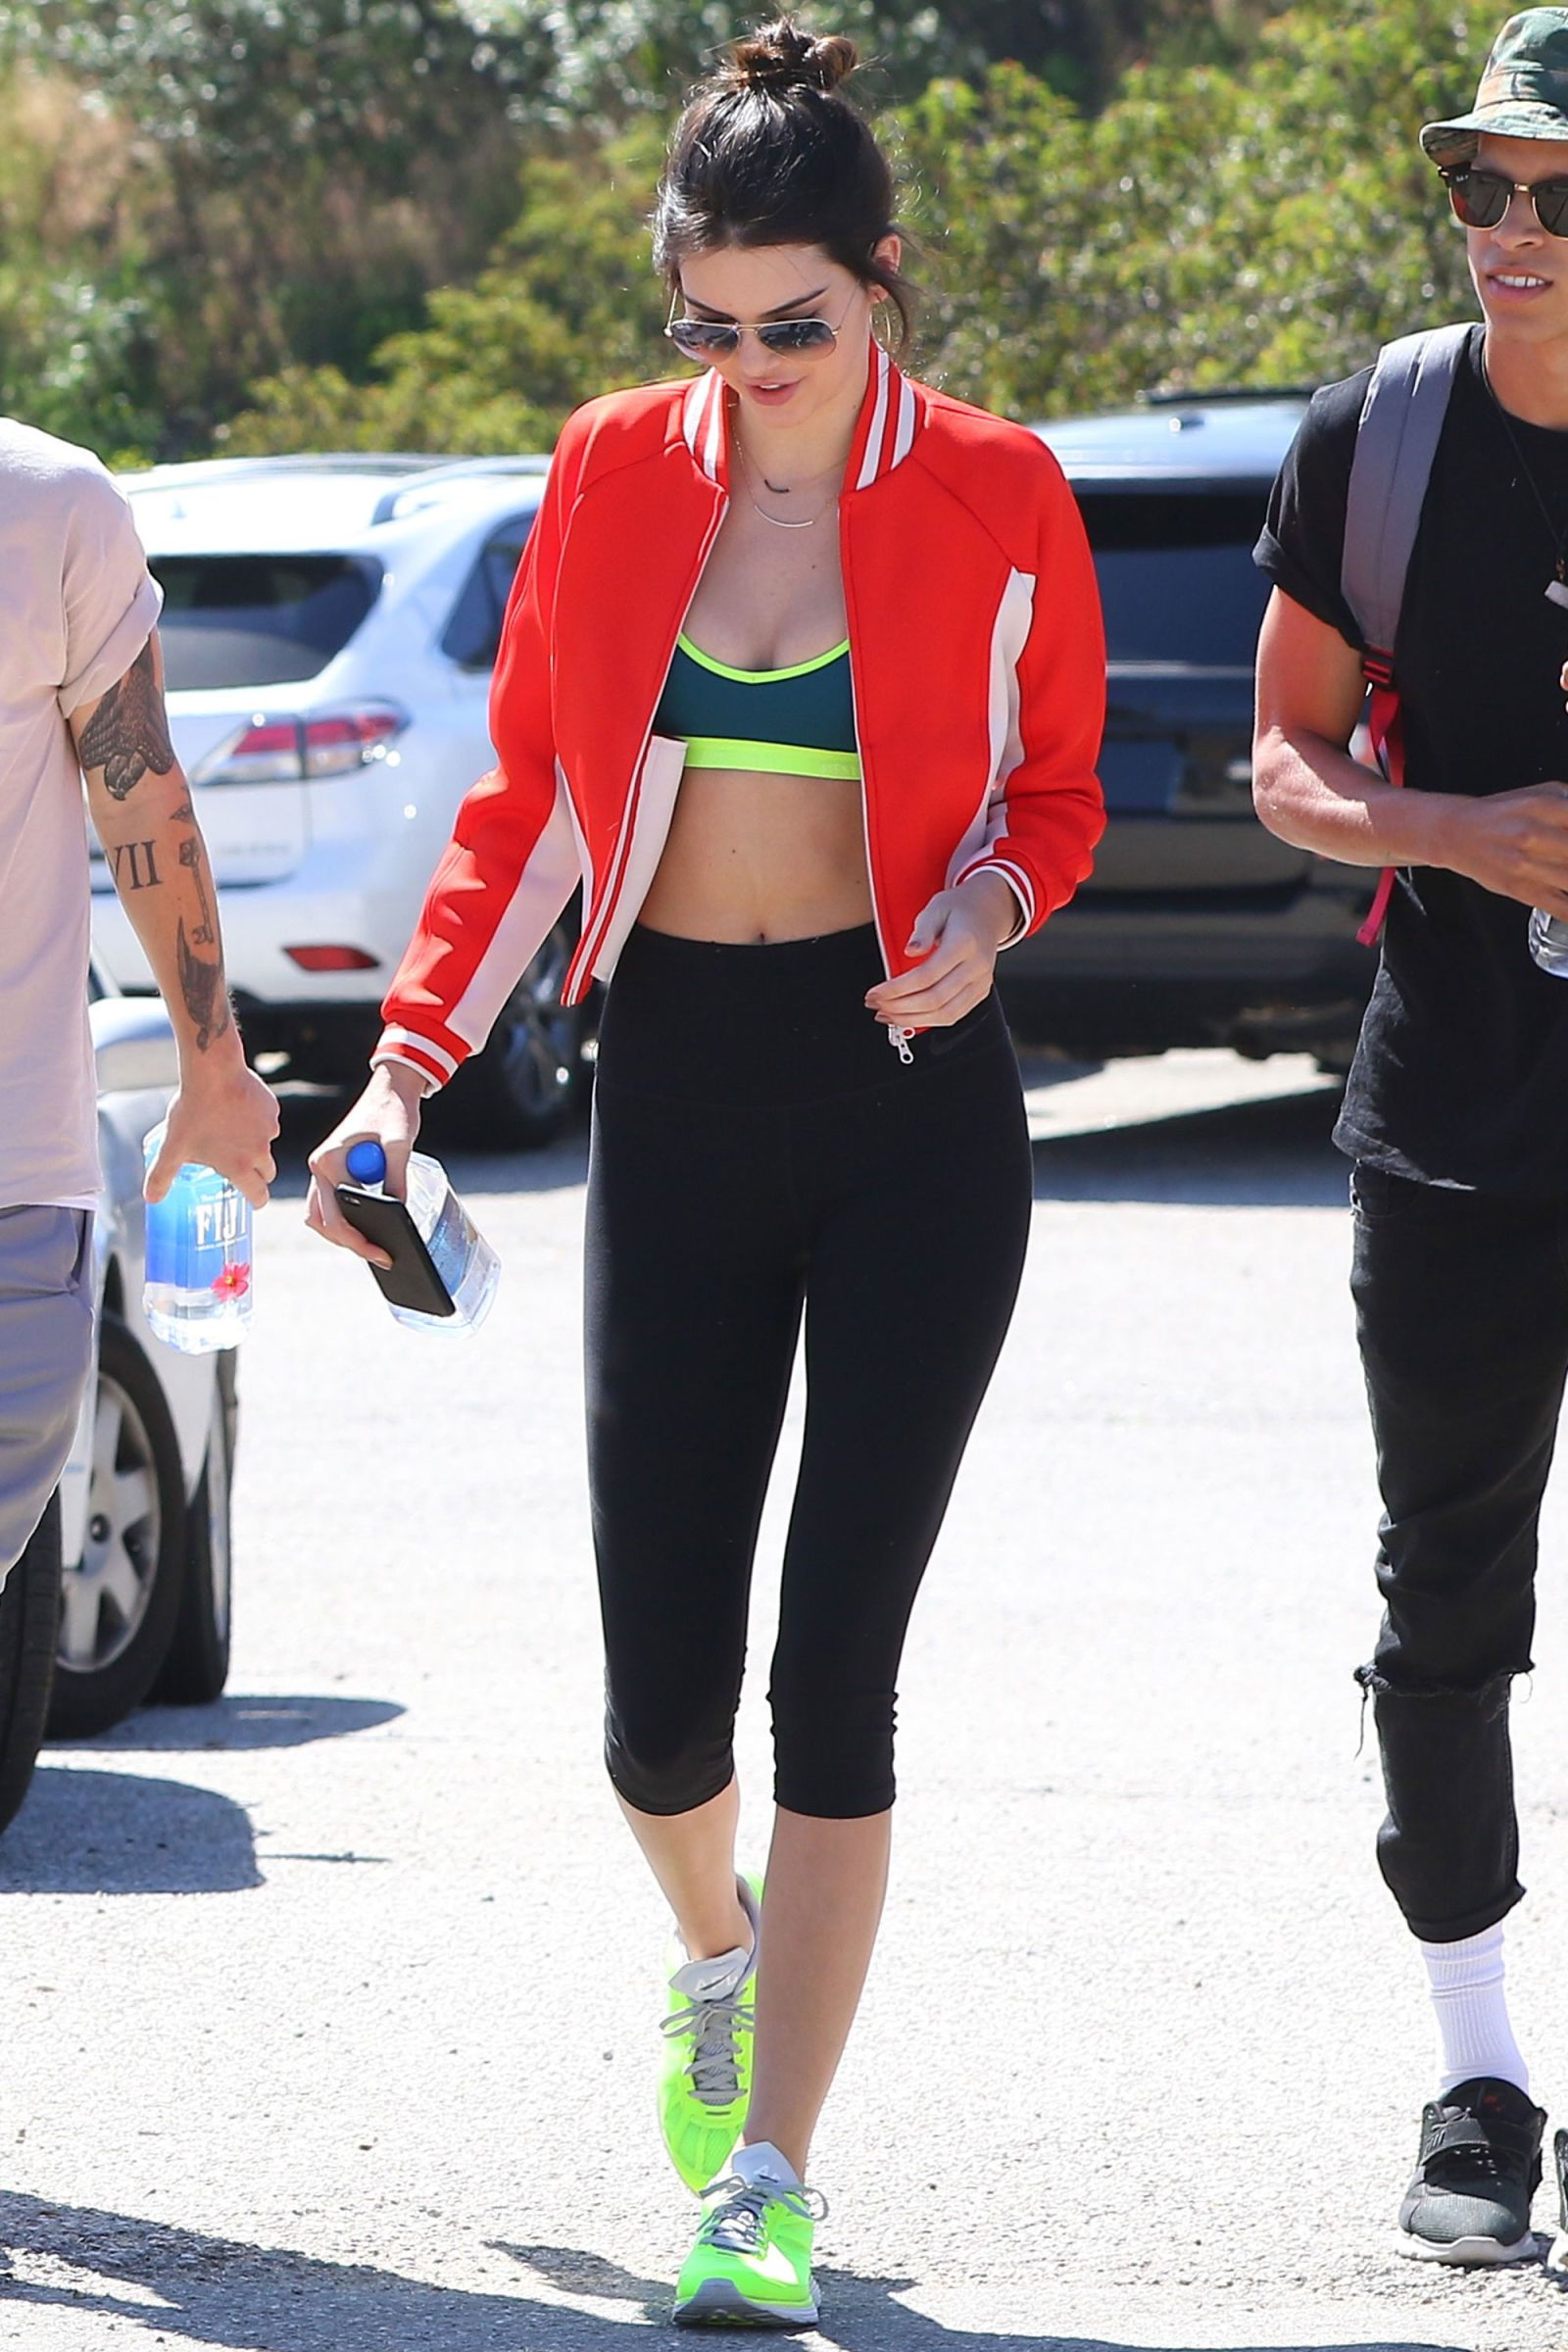 763bf0da86f58 15 Times Kendall Jenner and Gigi Hadid Looked Flawless in Gym Clothes -  Cosmopolitan.com